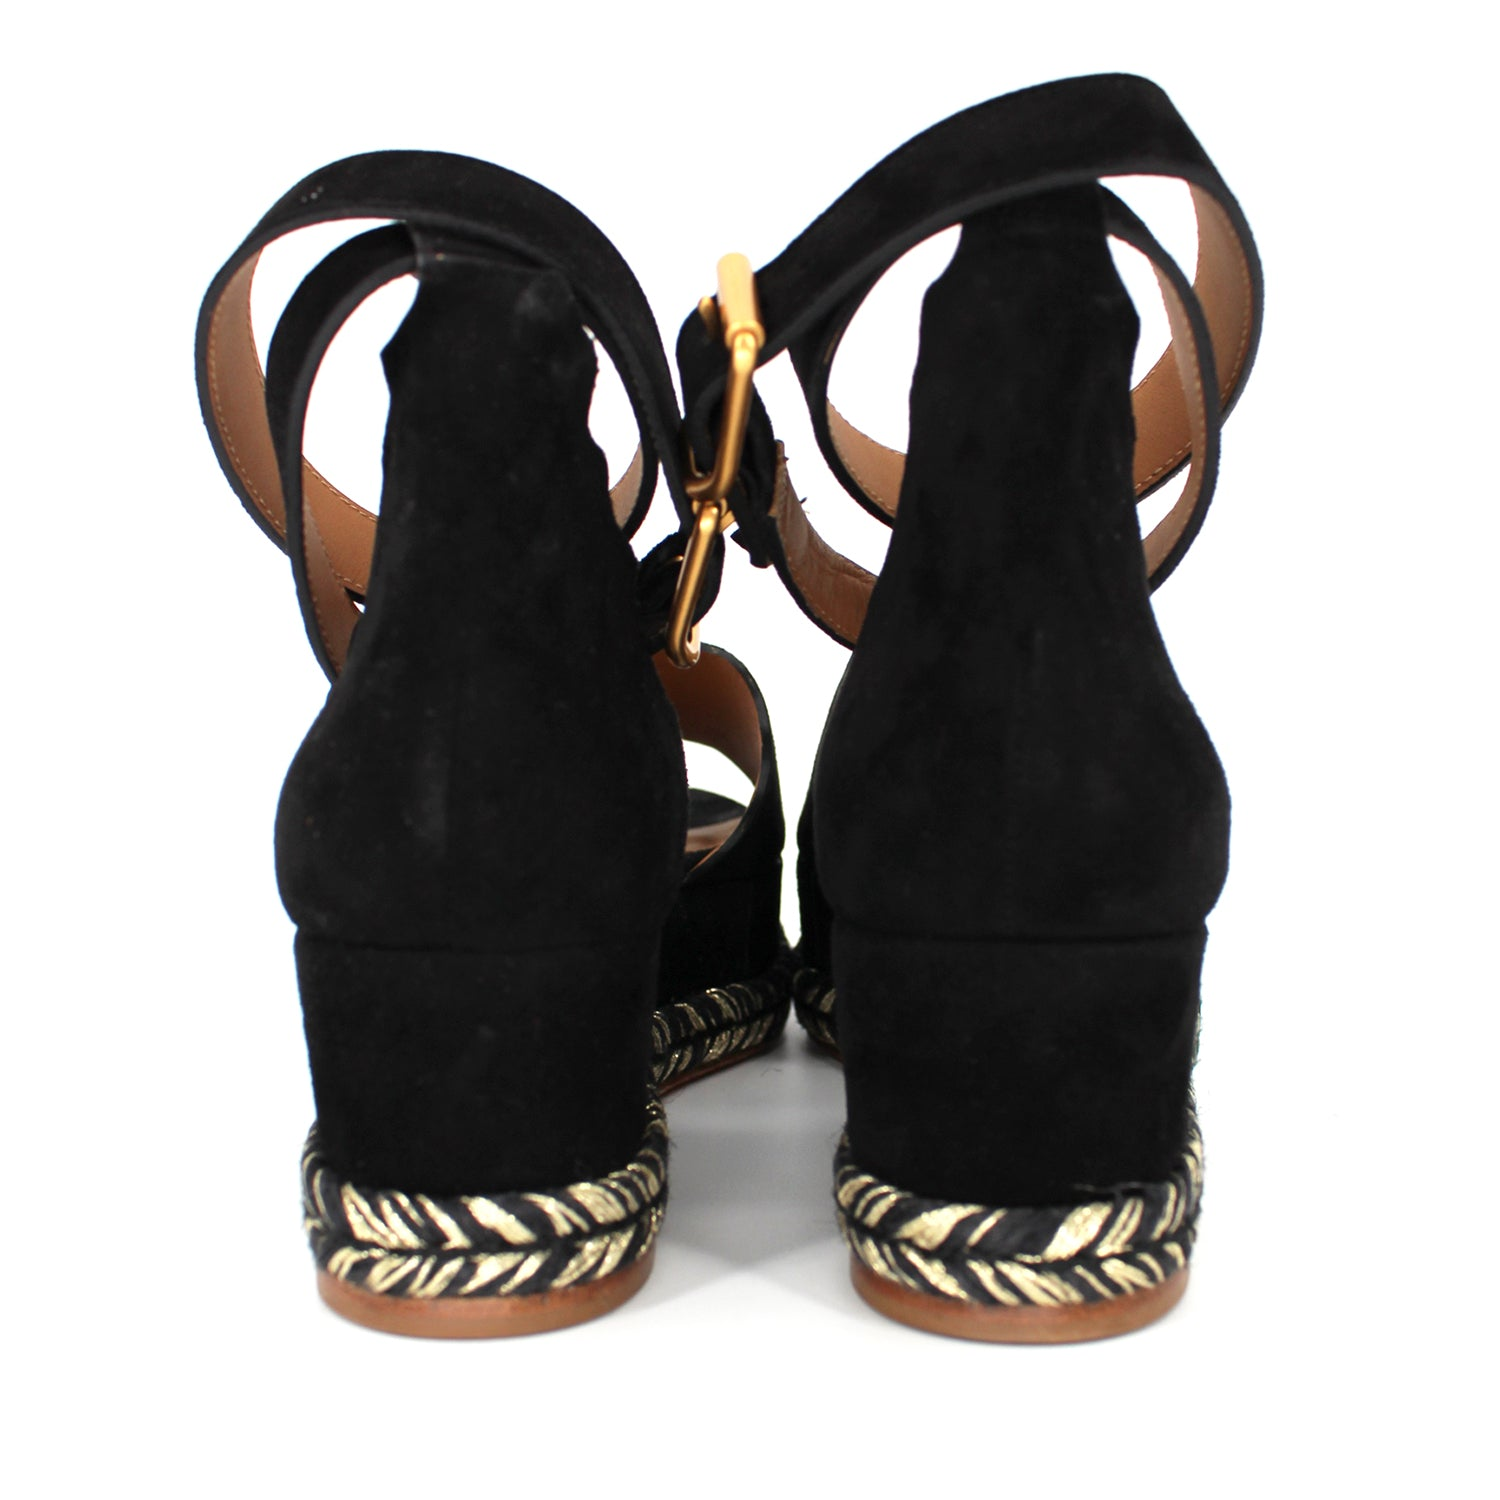 Chloe Lauren Scalloped Sandals